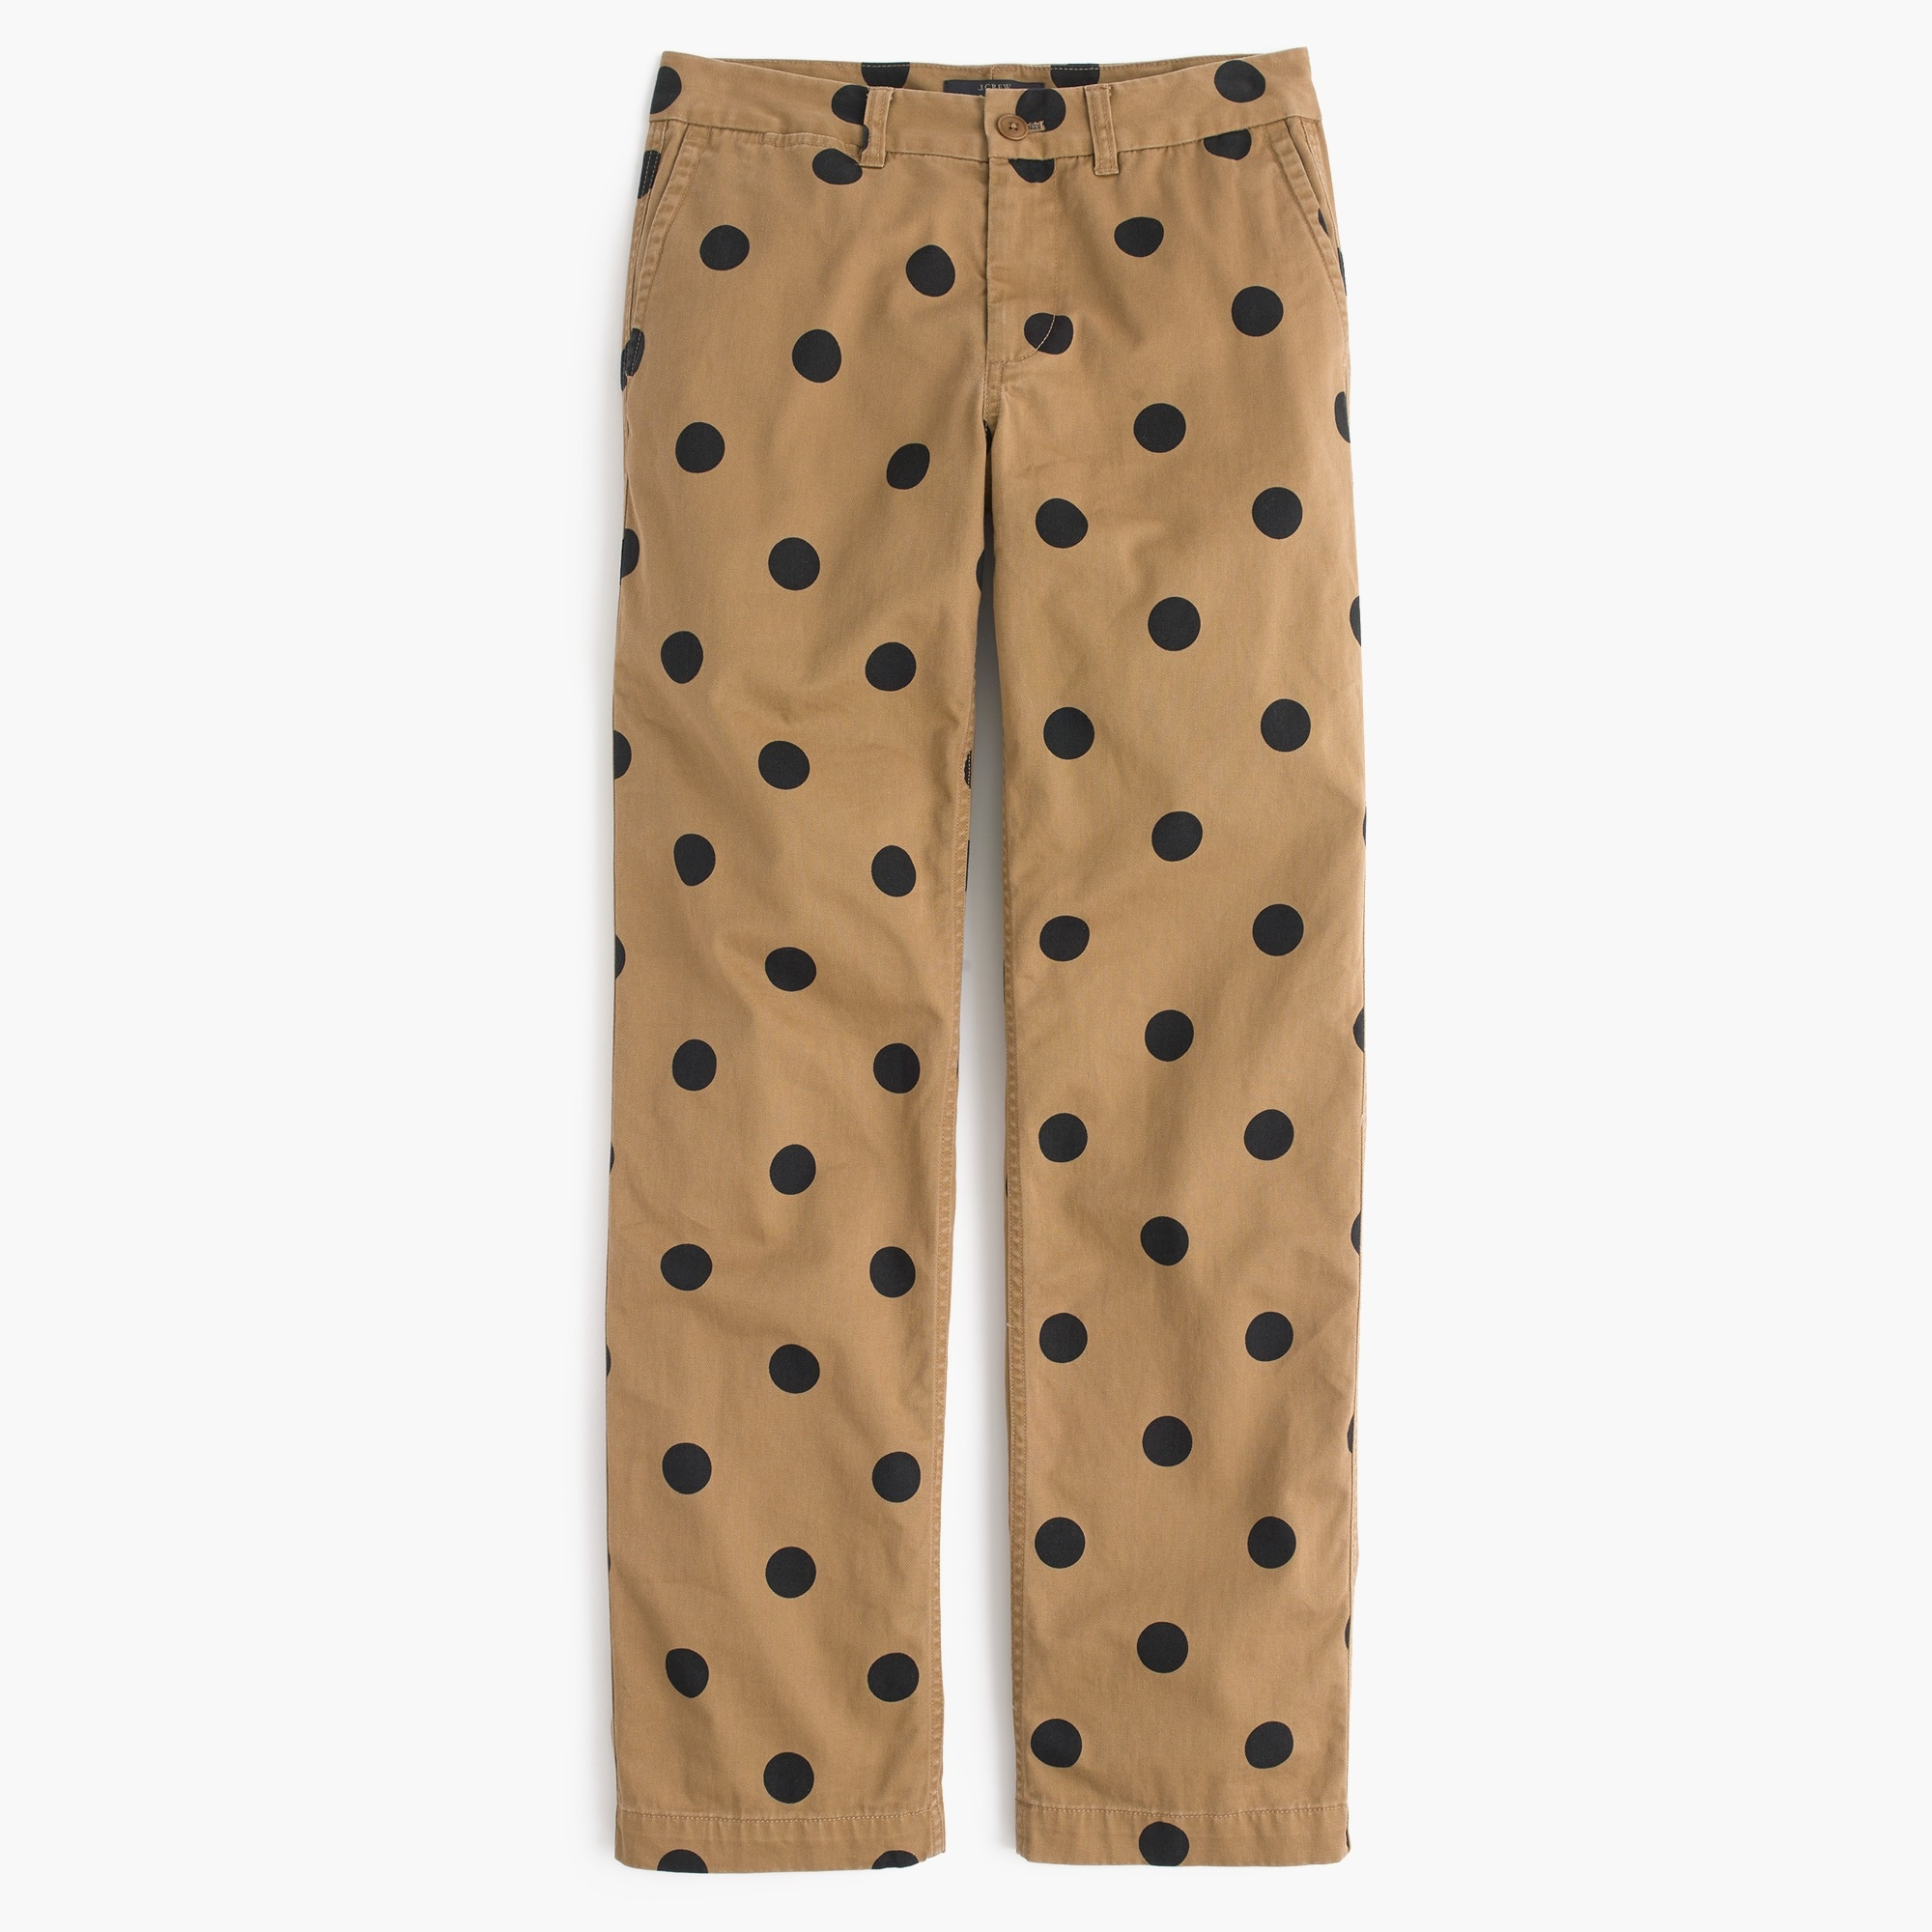 Image 2 for Tall boyfriend chino pant in polka dot